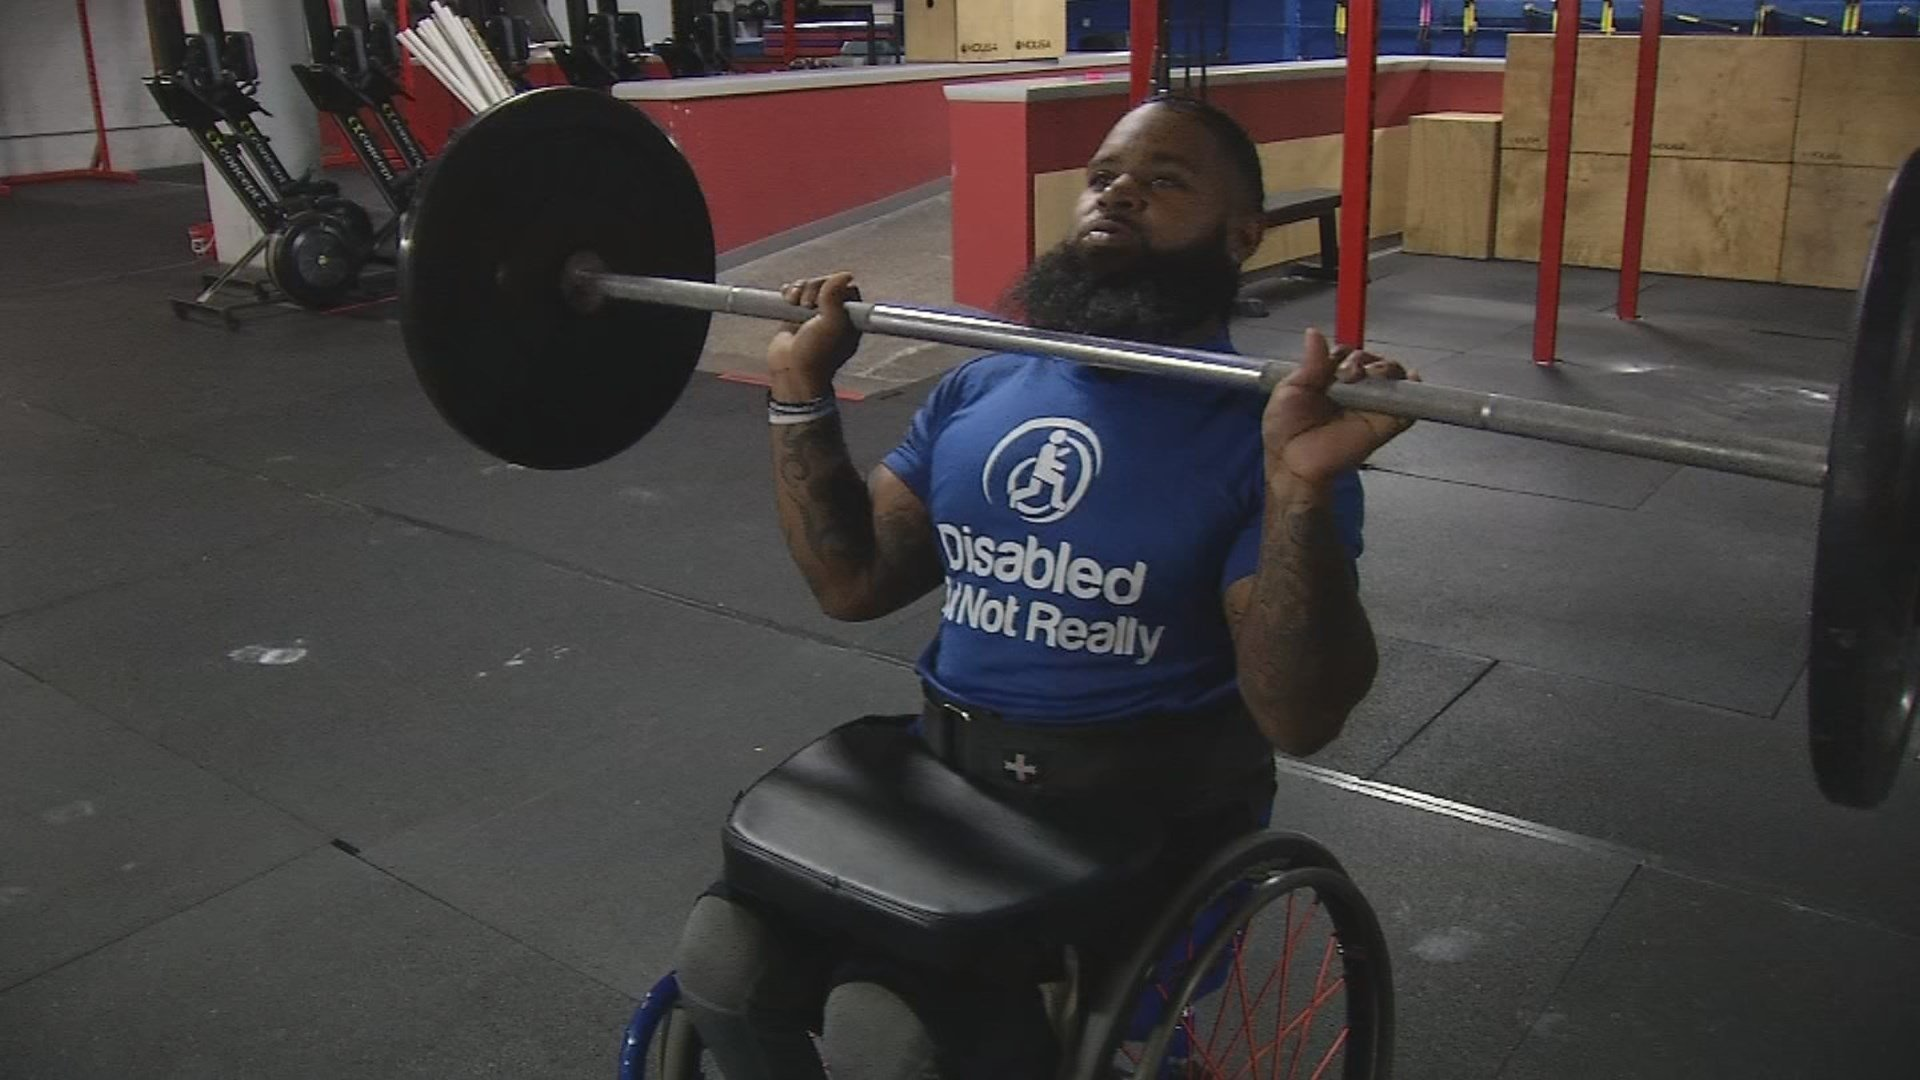 CrossFit is intense, grueling and pushes you to your limits.  For Wesley Hamilton, it's been life-changing. (KCTV5)